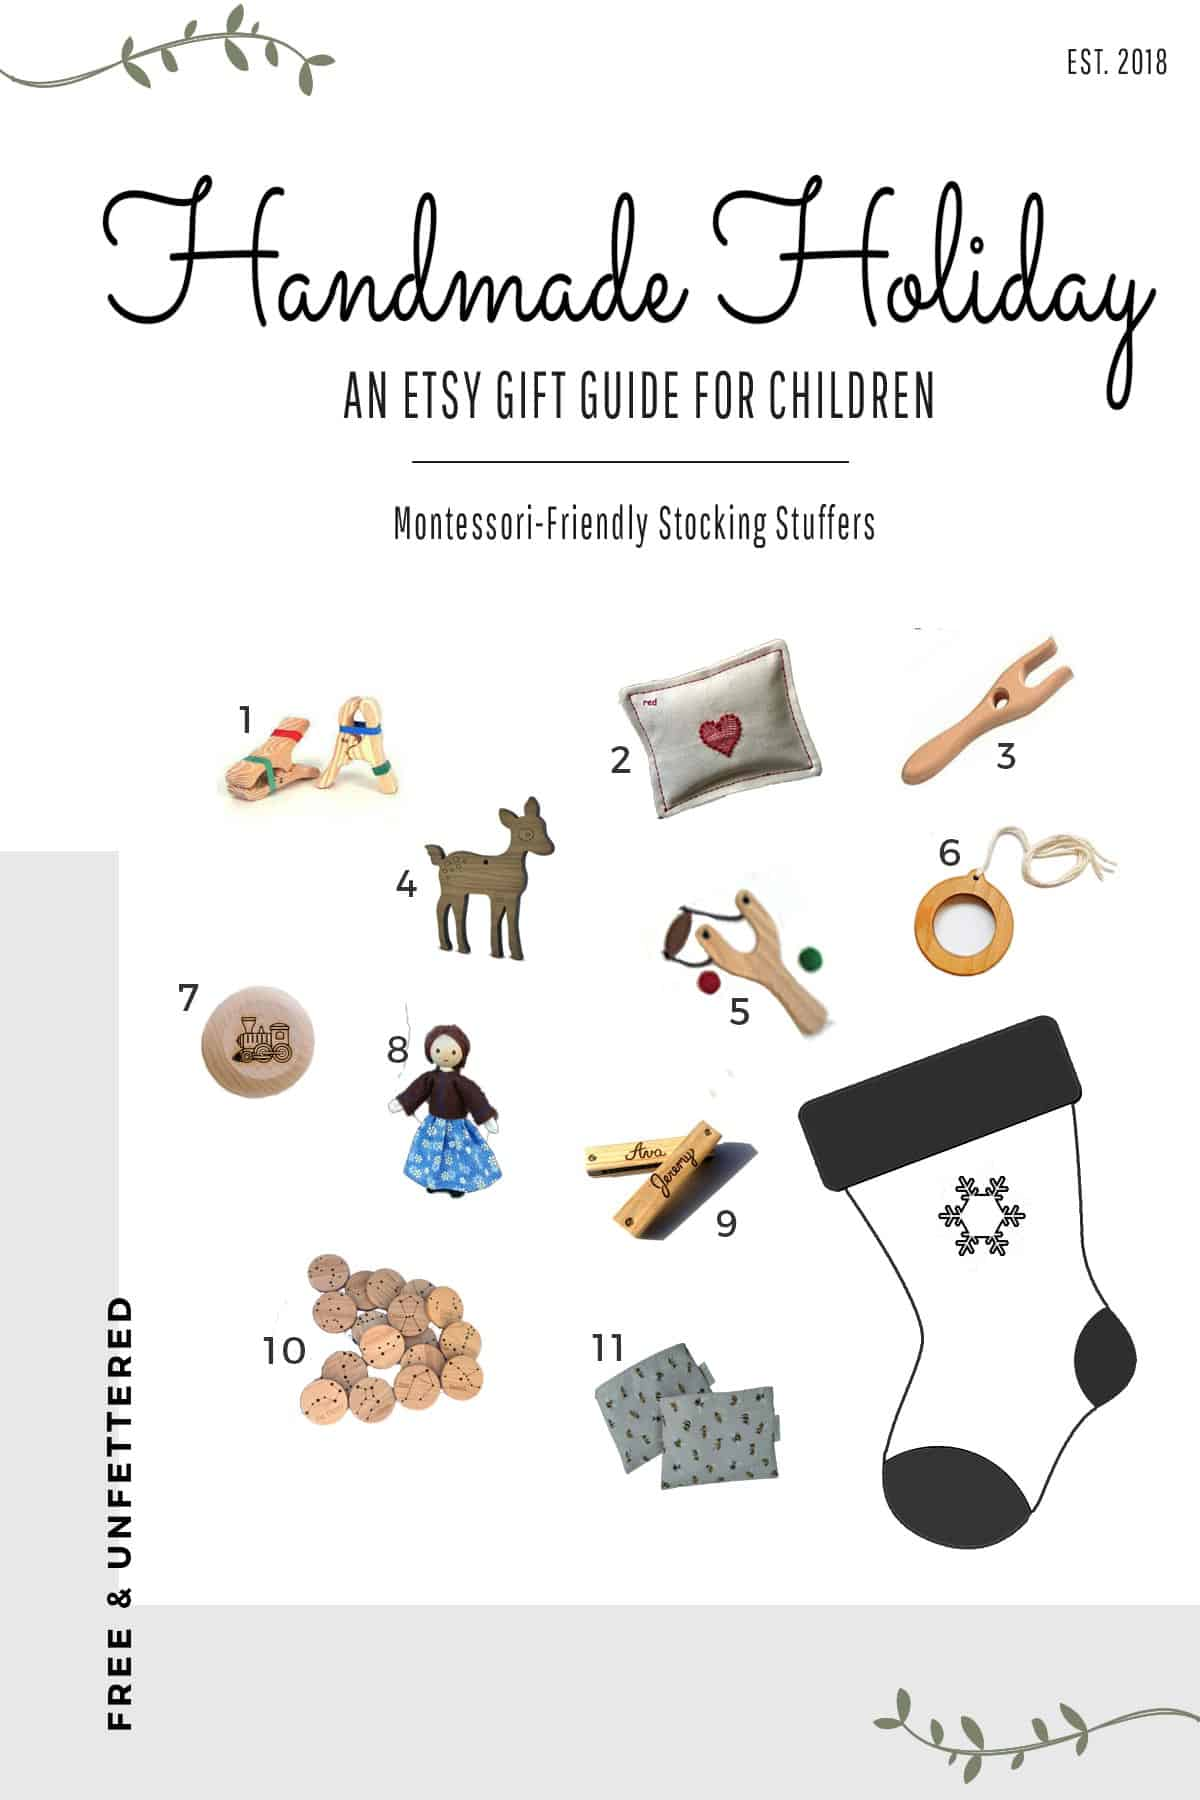 montessori-friendly stocking stuffers from small shops for Christmas